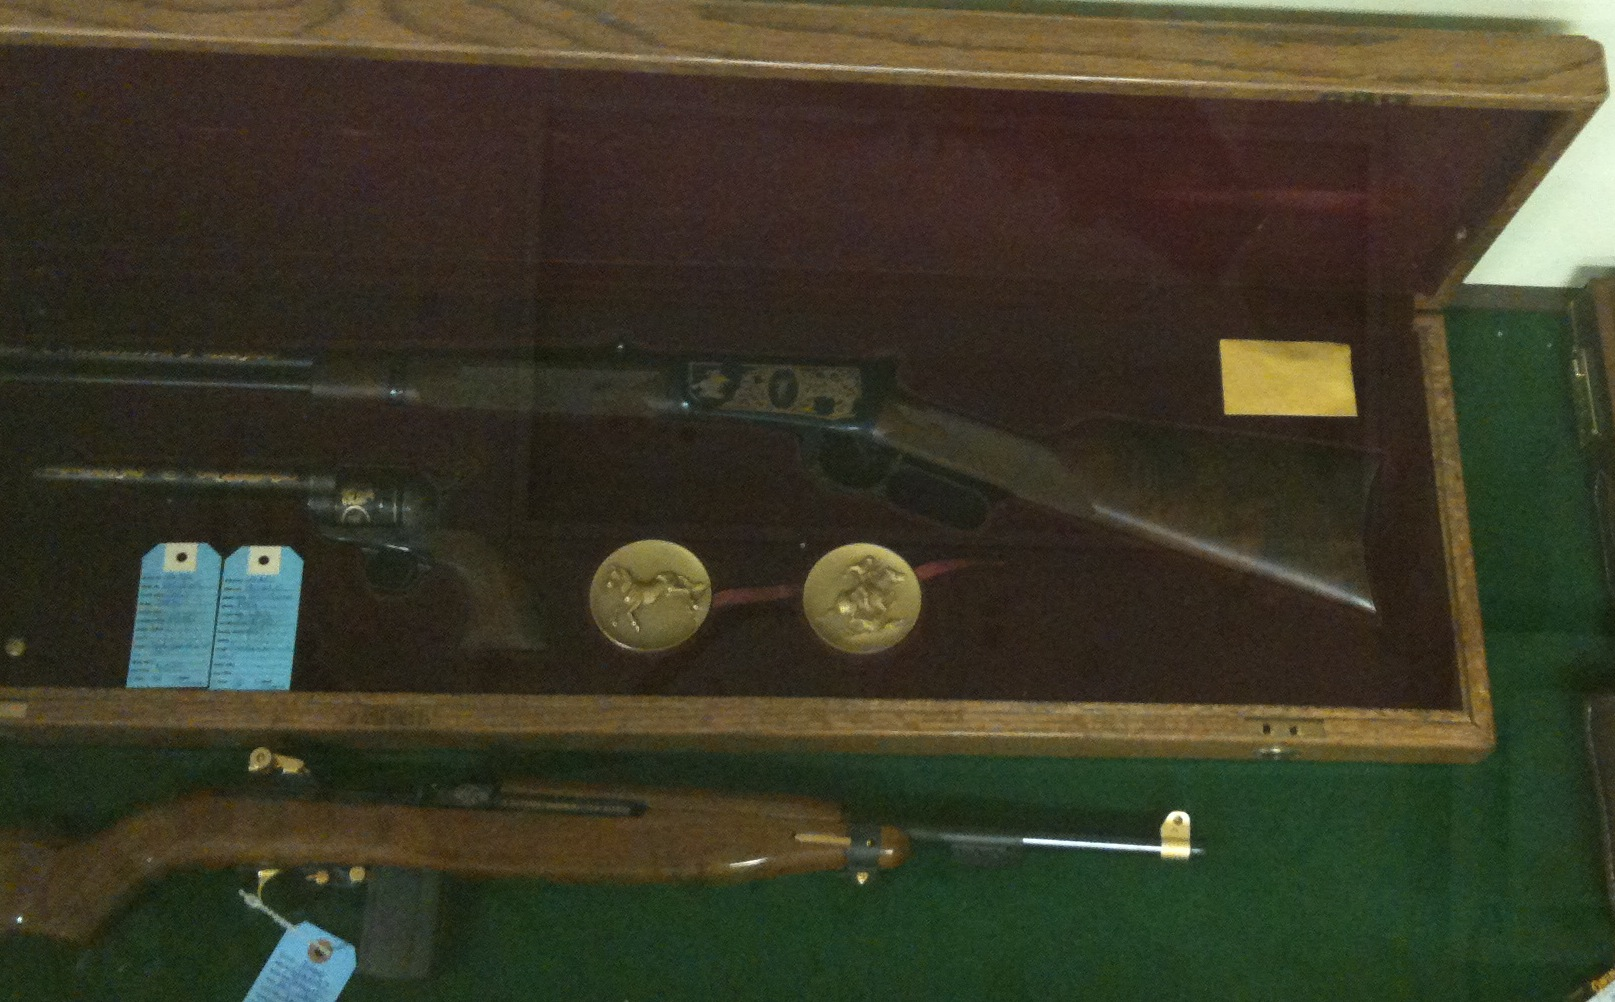 The extremely rare and high quality firearms are kept under lock and key in the glass display cases that the handguns are in.